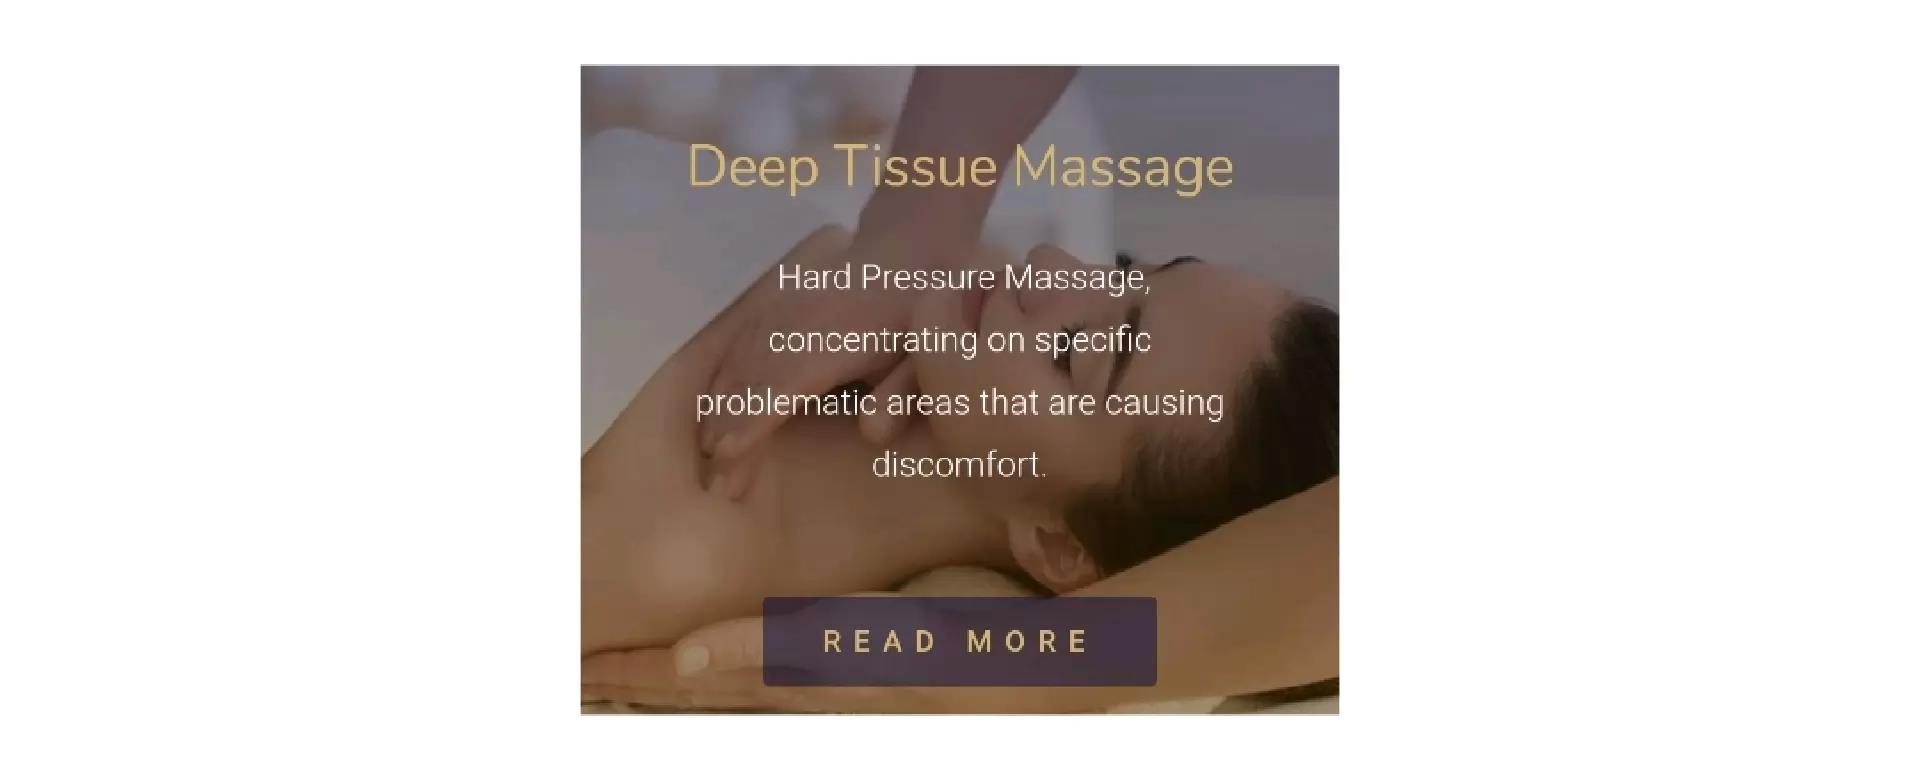 Male-To-Male- Body -Massage- In -Mumbai -Service -At -Home